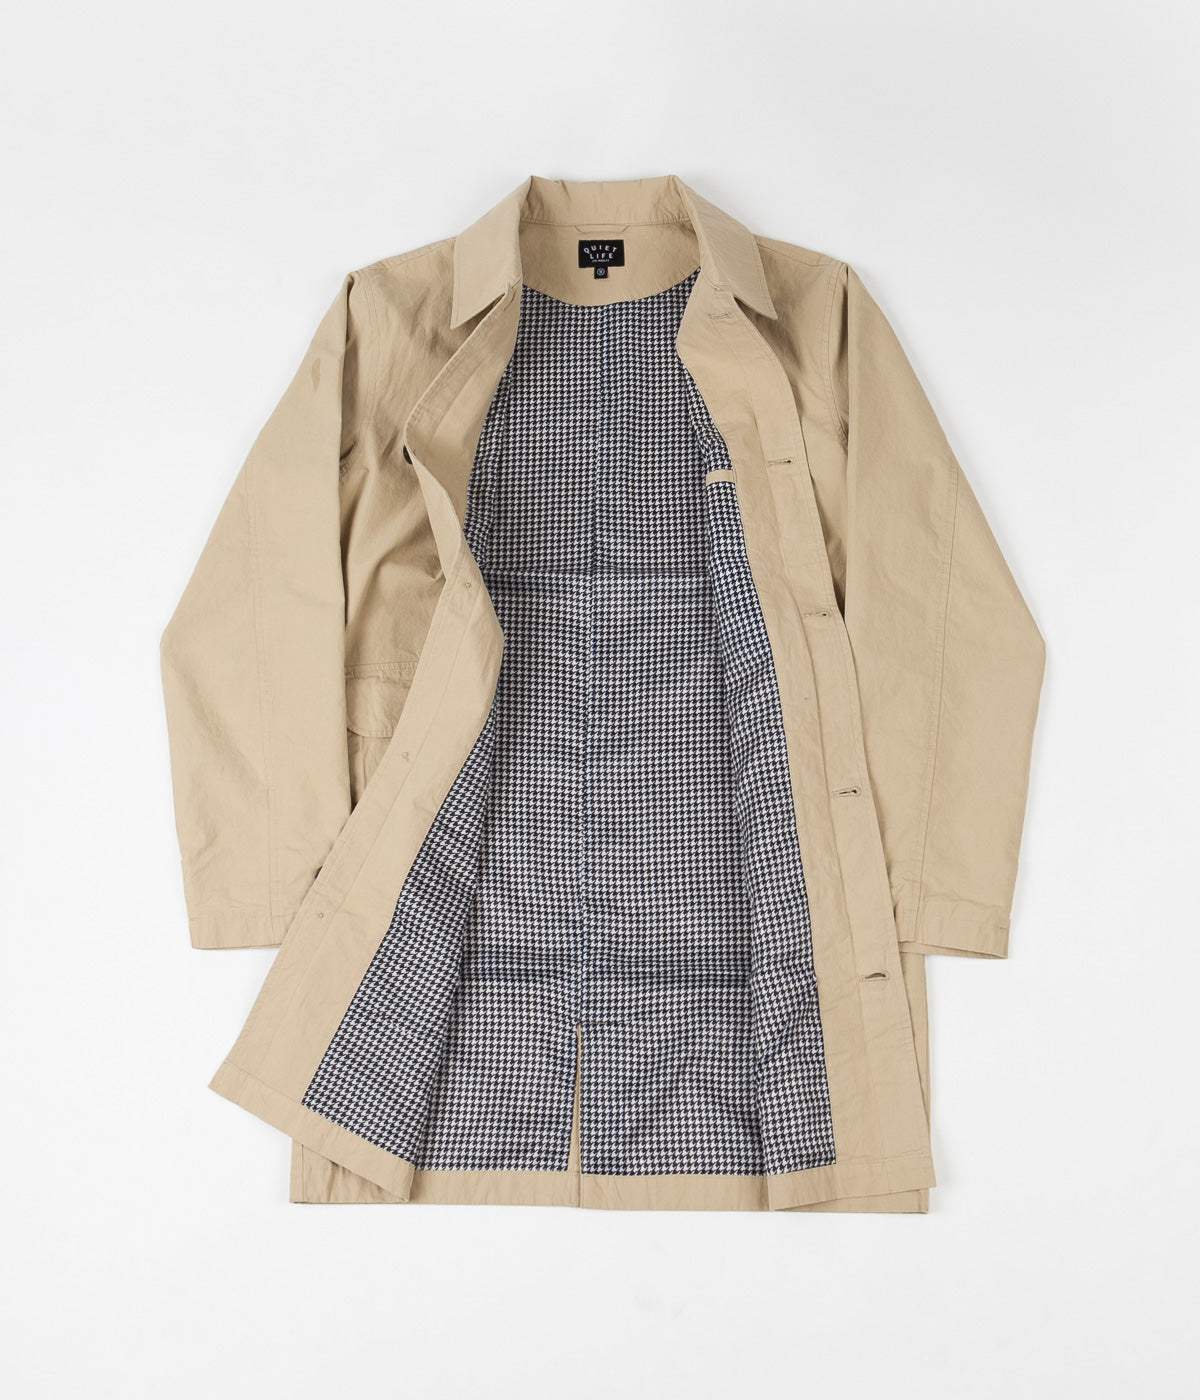 The Quiet Life Houndstooth Trench Jacket - Tan